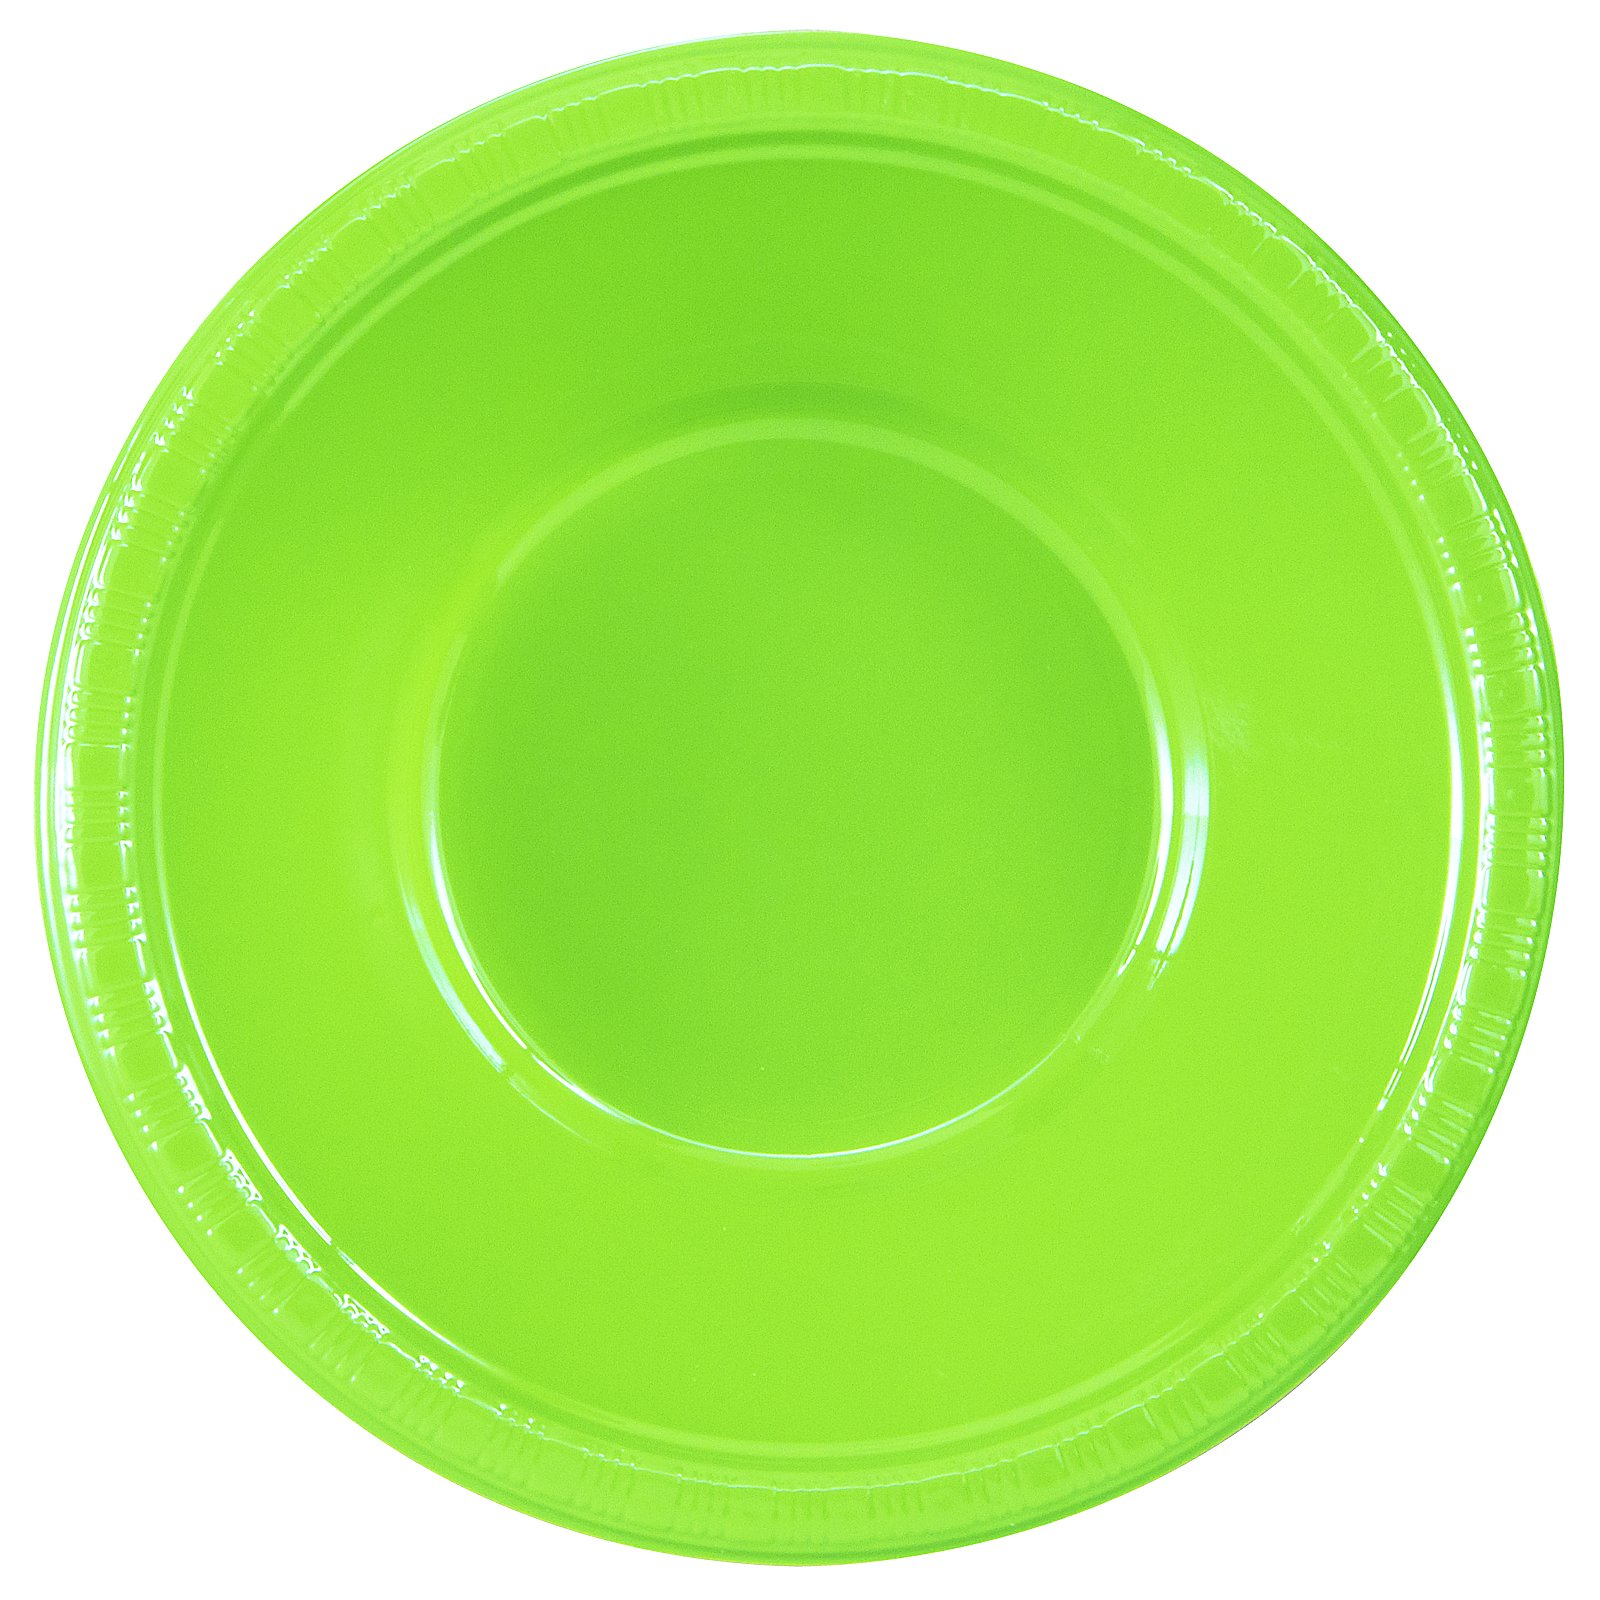 Fresh Lime (Lime Green) Plastic Bowls (20 count)